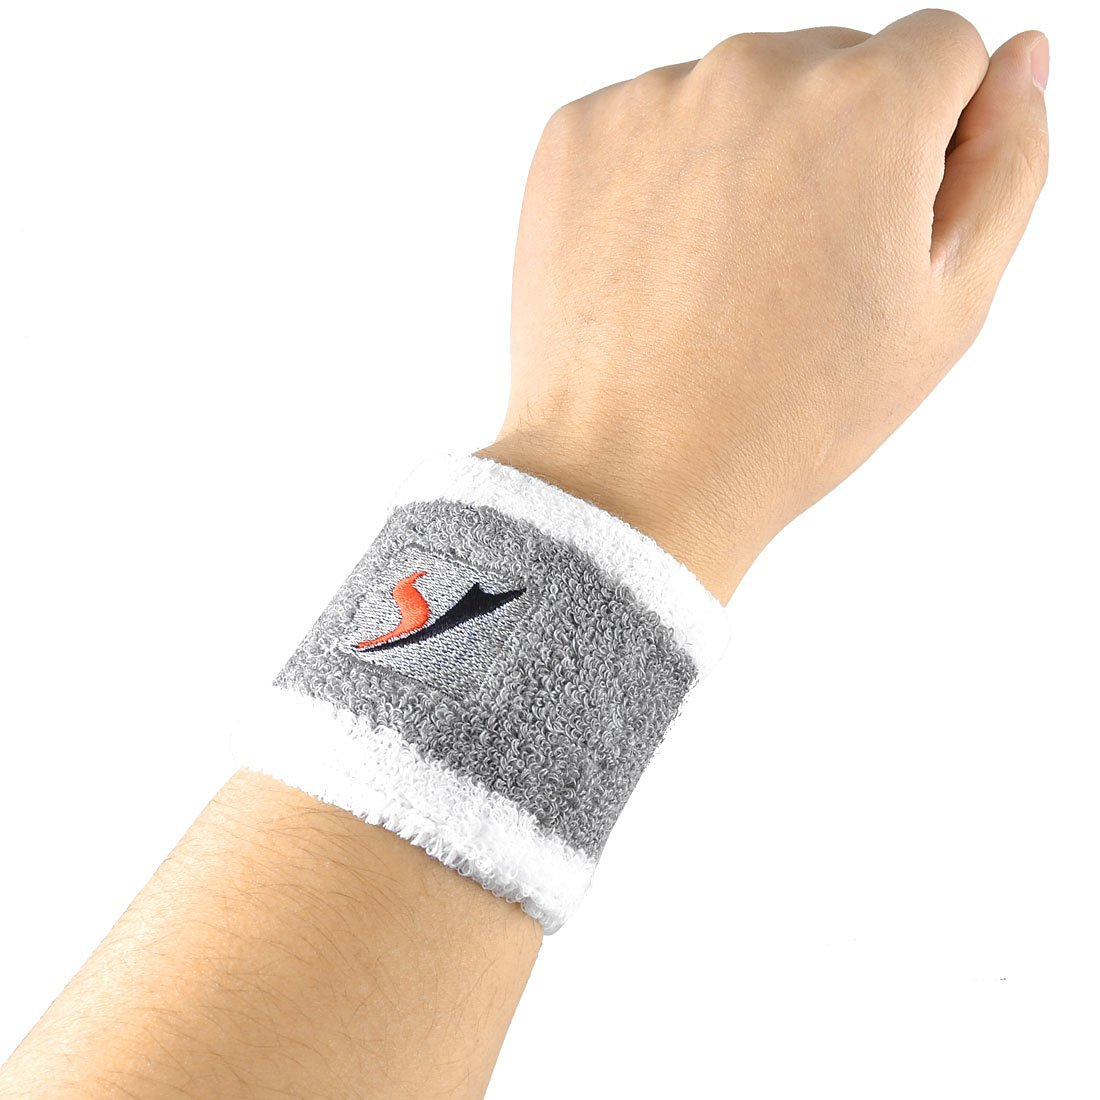 2 Pcs White Gray Elastic Fabric Sports Stretchy Terry Wrist Band Support Protector